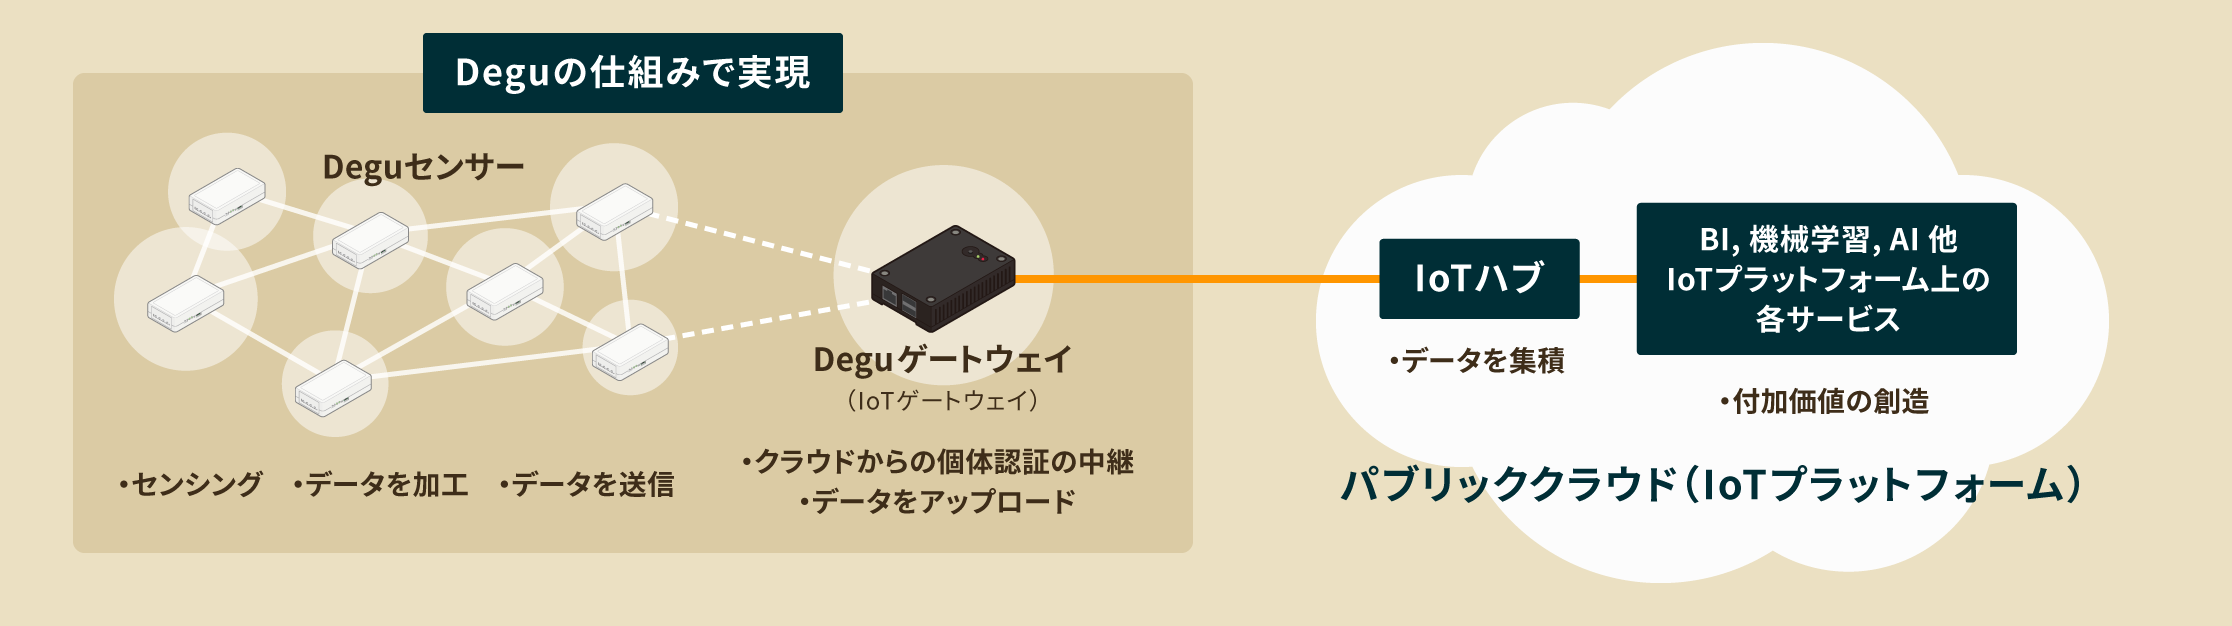 about_degu-a6_01